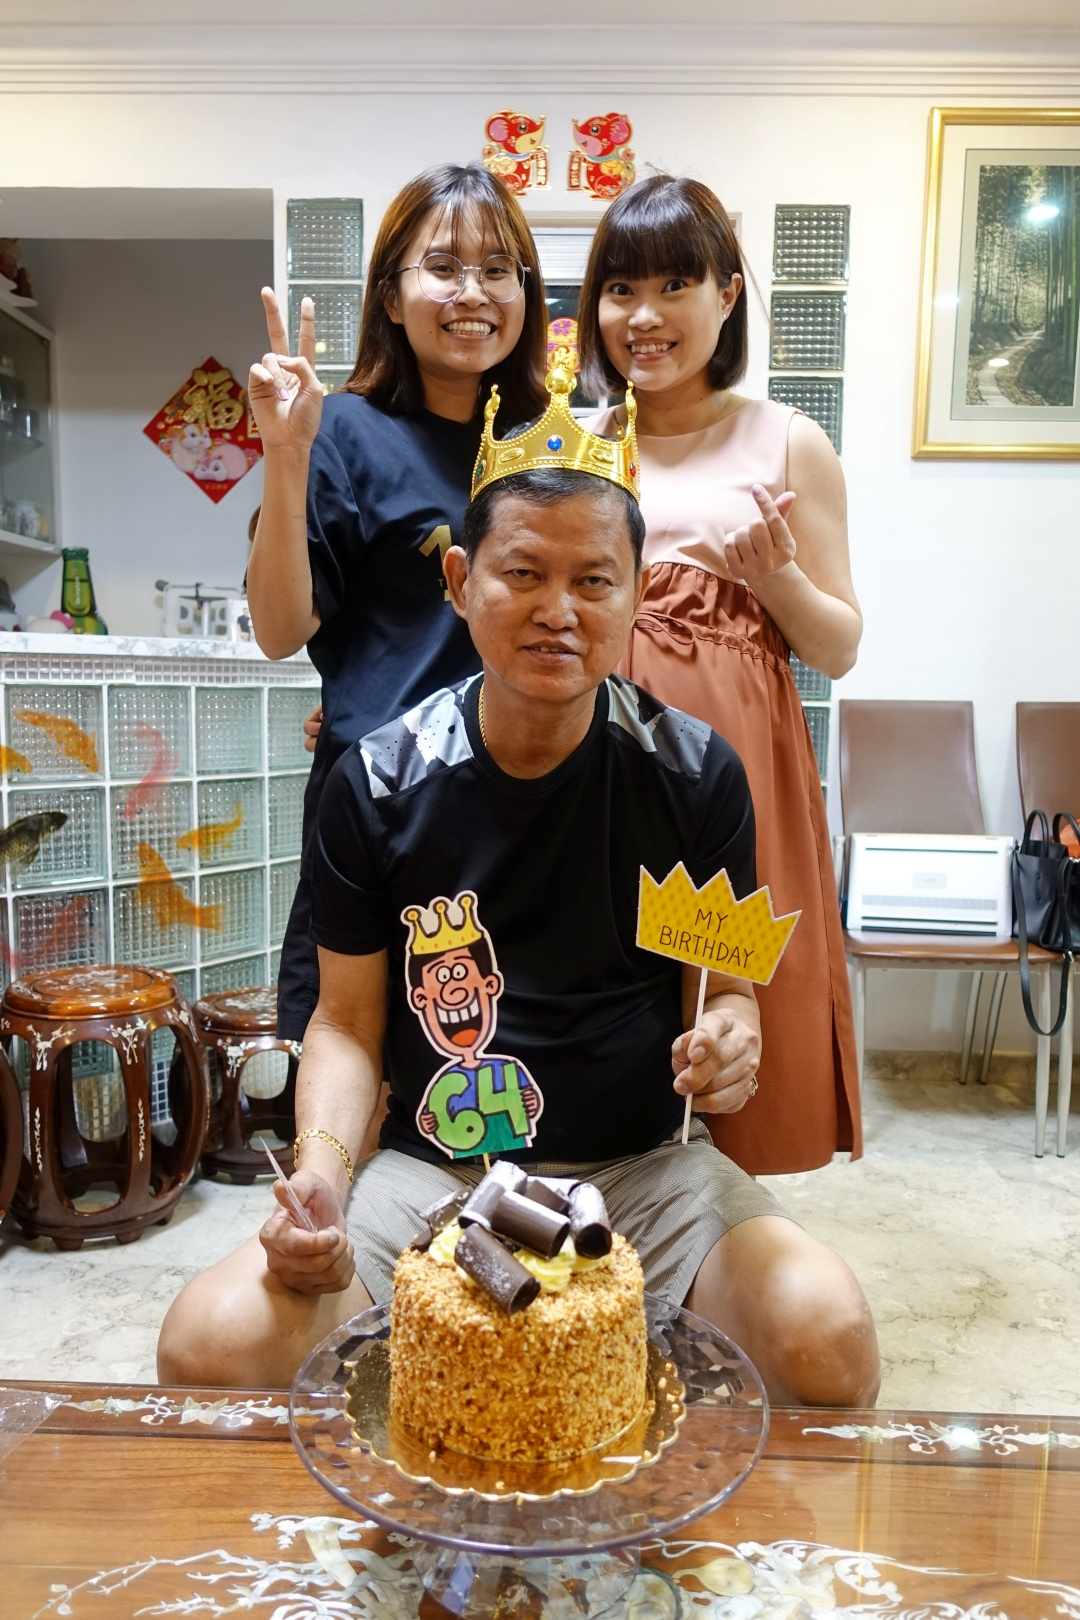 Dad's Birthday | joanne-khoo.com